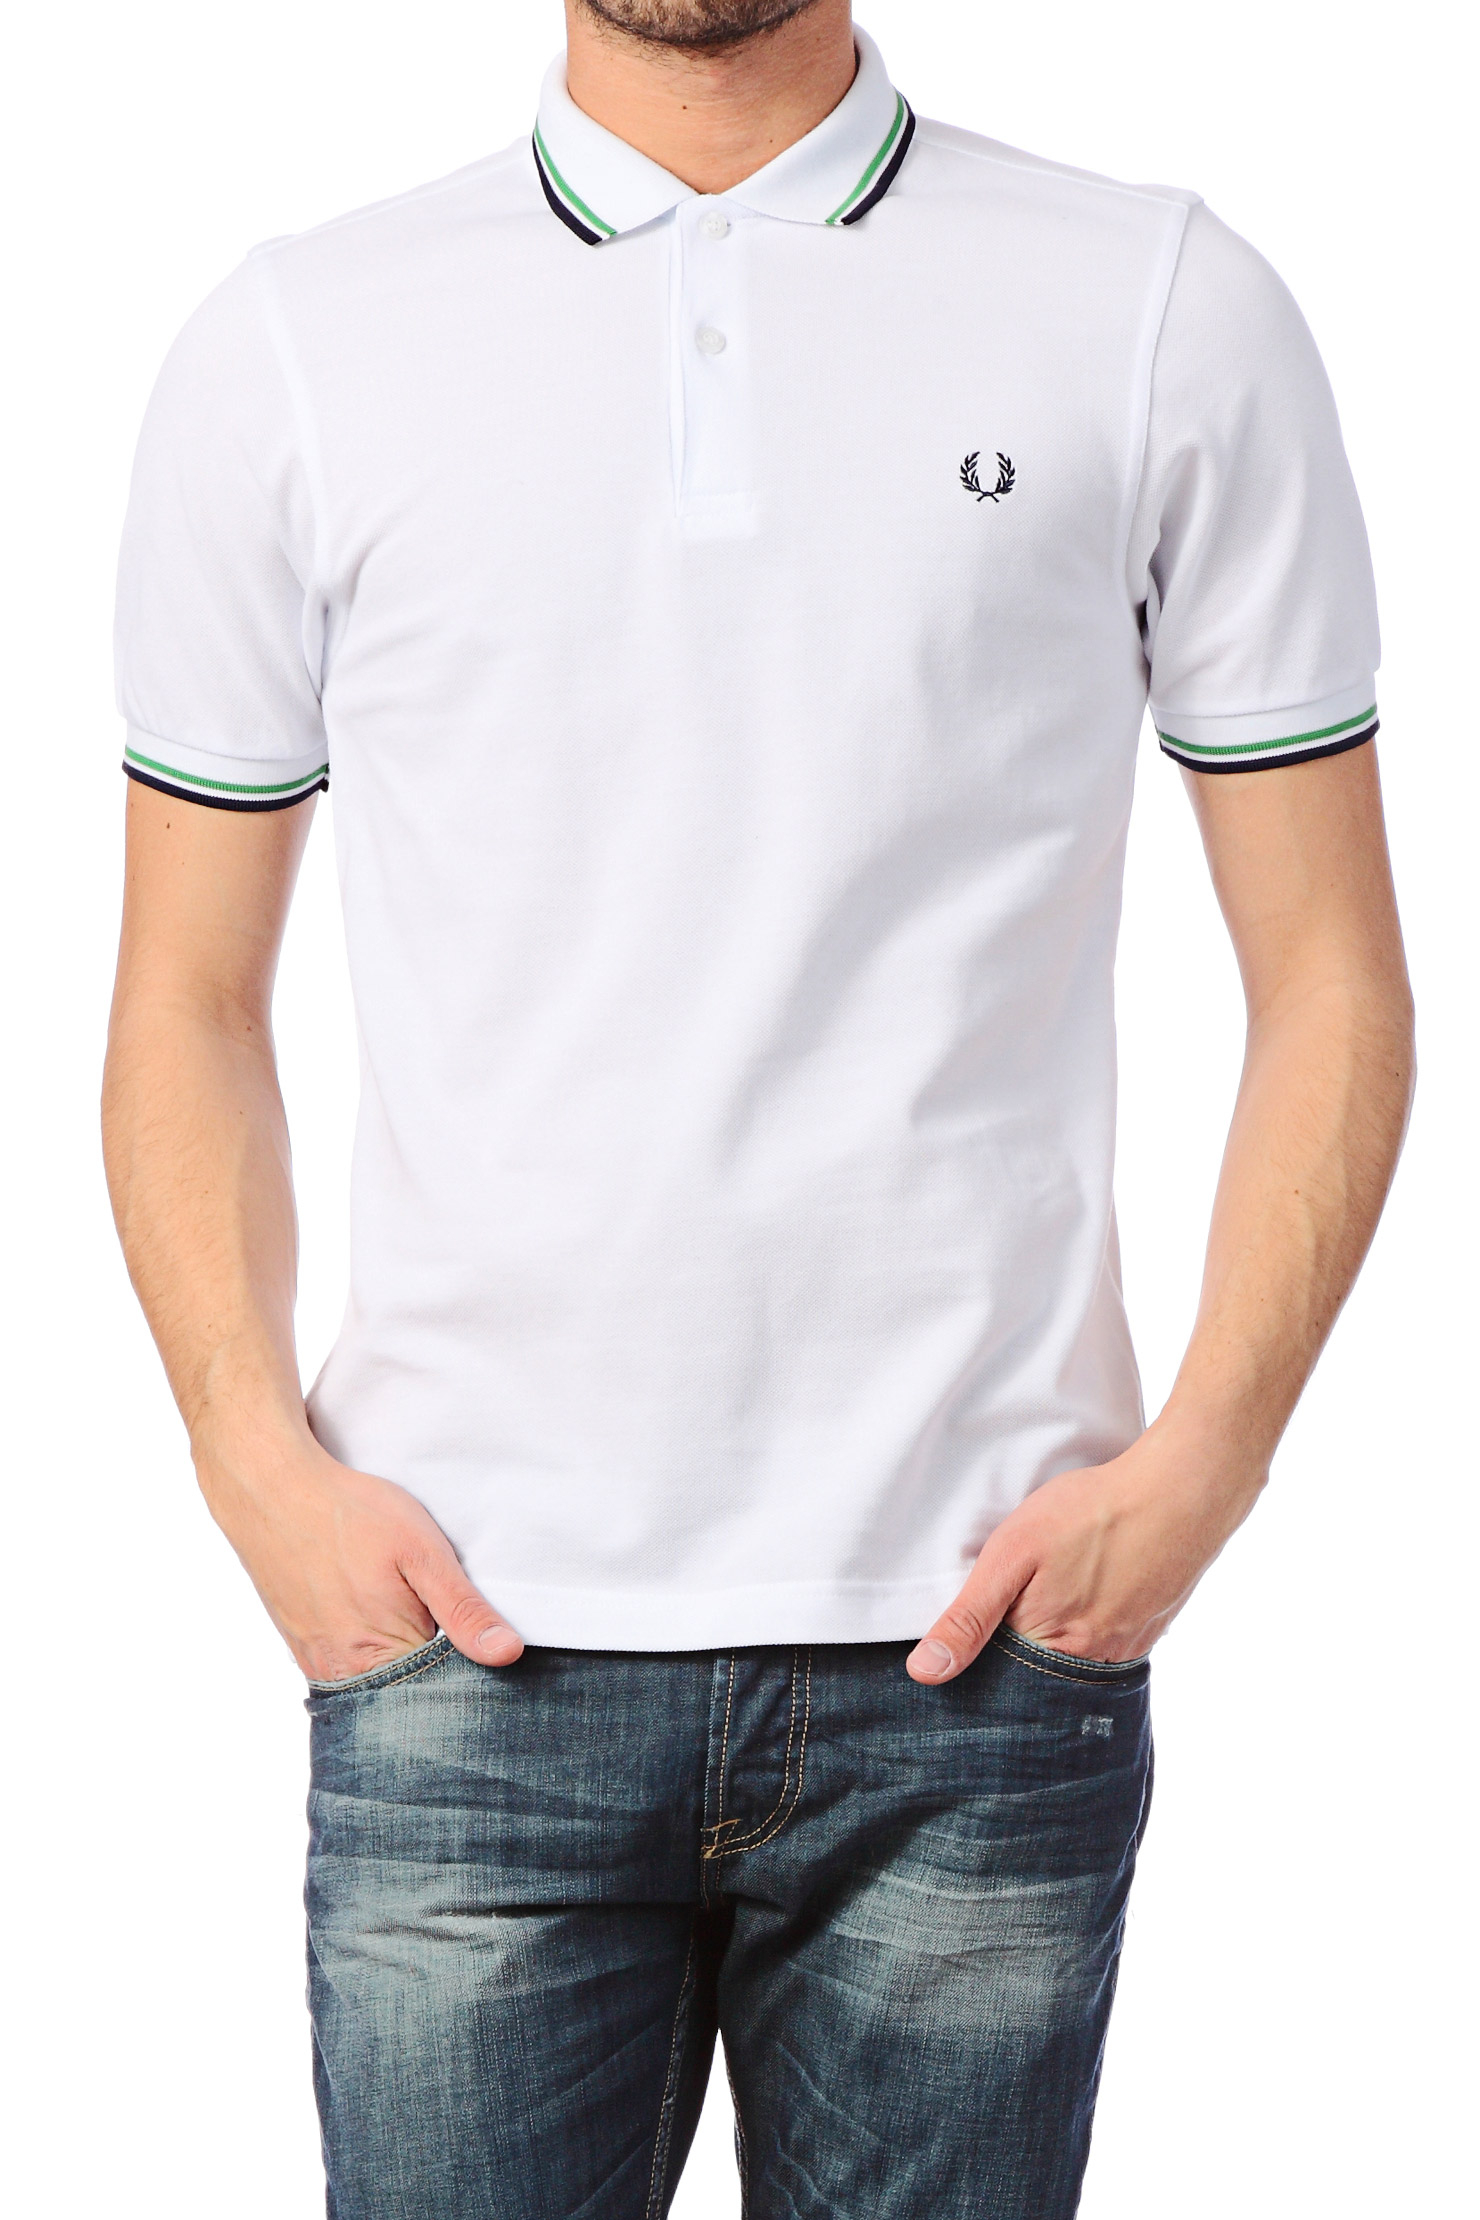 fred perry polo shirt slim fit twin tipped shirt in white for men lyst. Black Bedroom Furniture Sets. Home Design Ideas